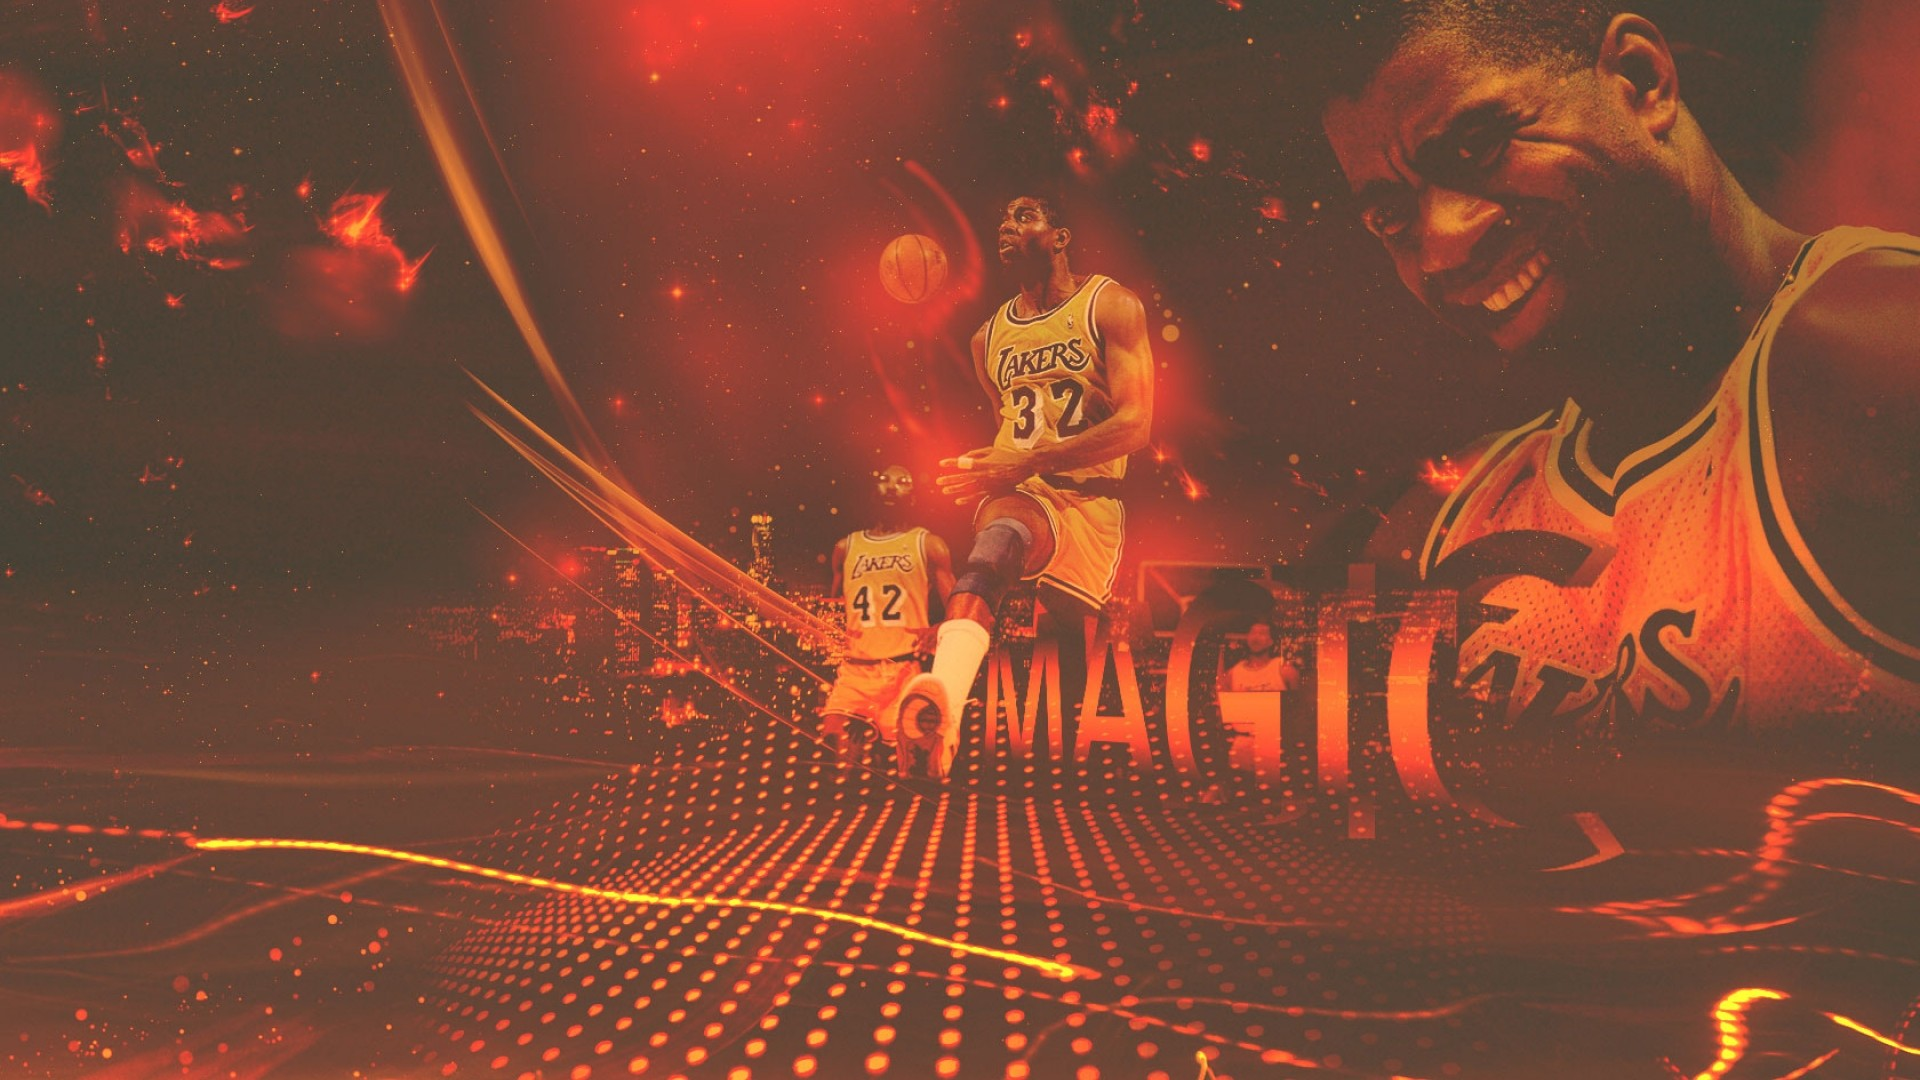 1920x1080 Magic Johnson Lakers wallpaper